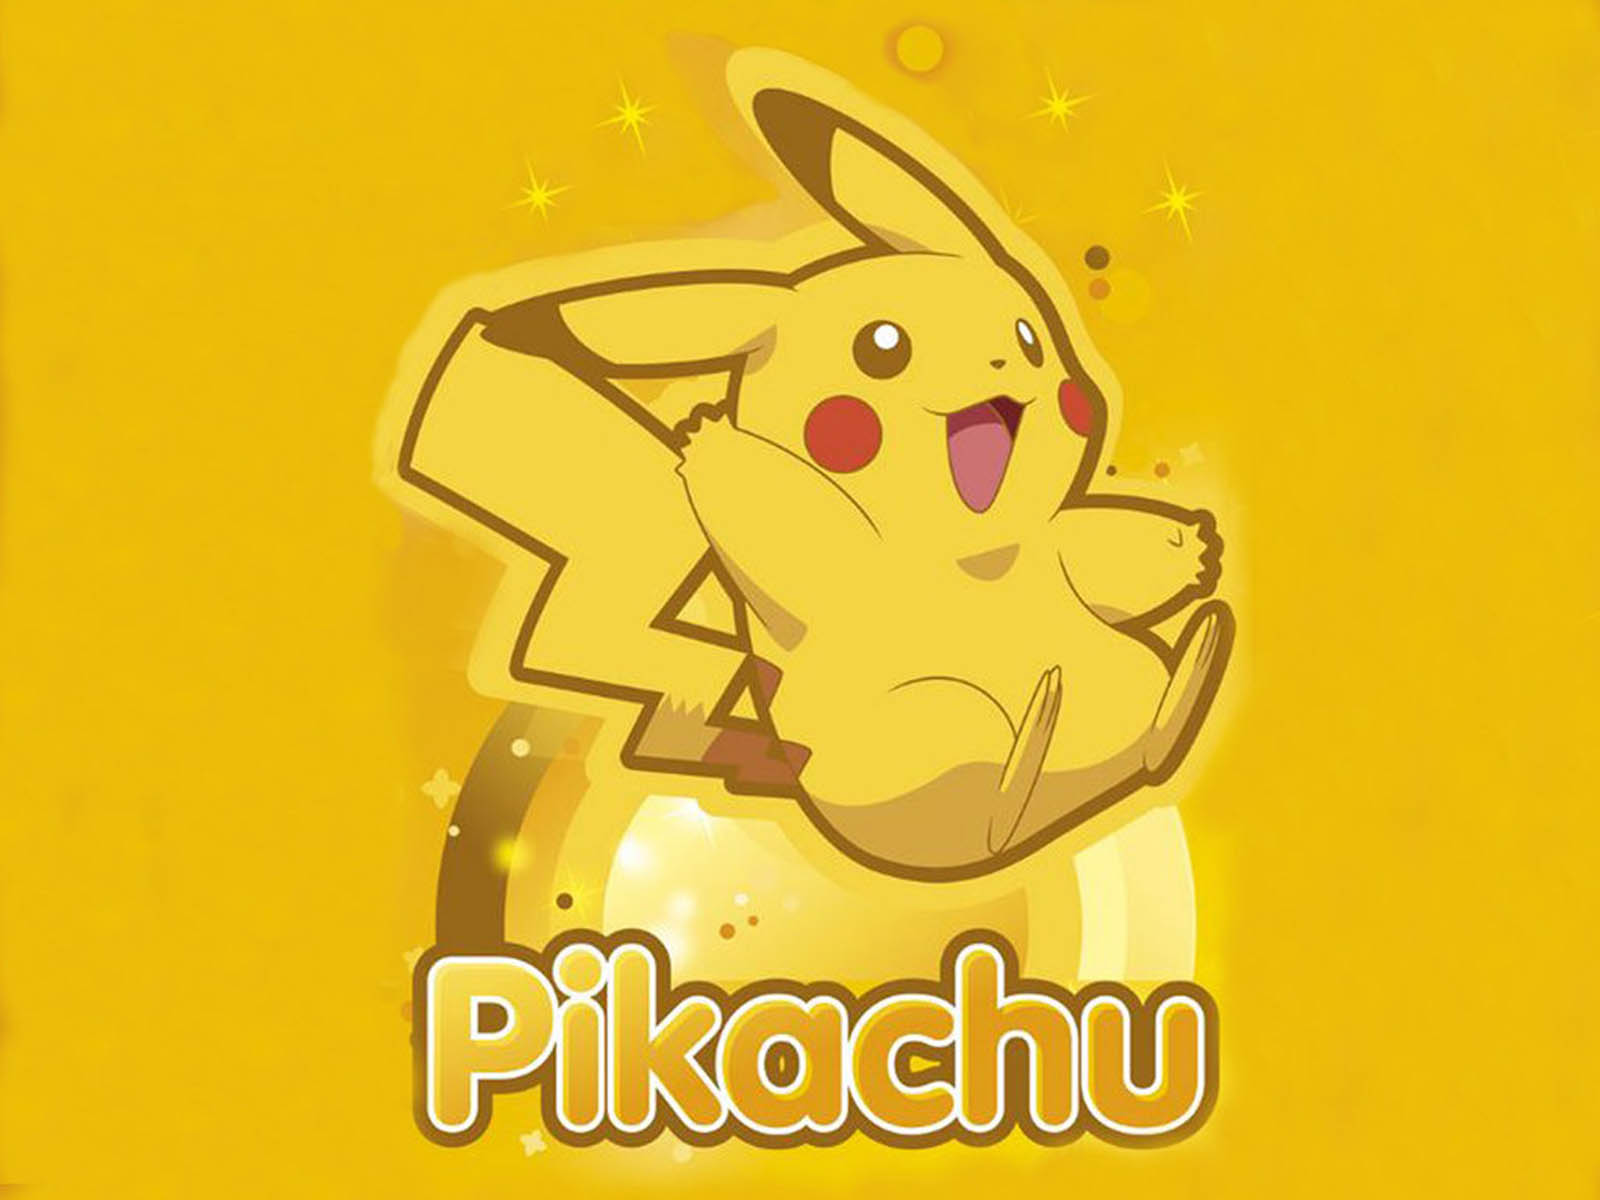 pikachu pokemon wallpaper - photo #3